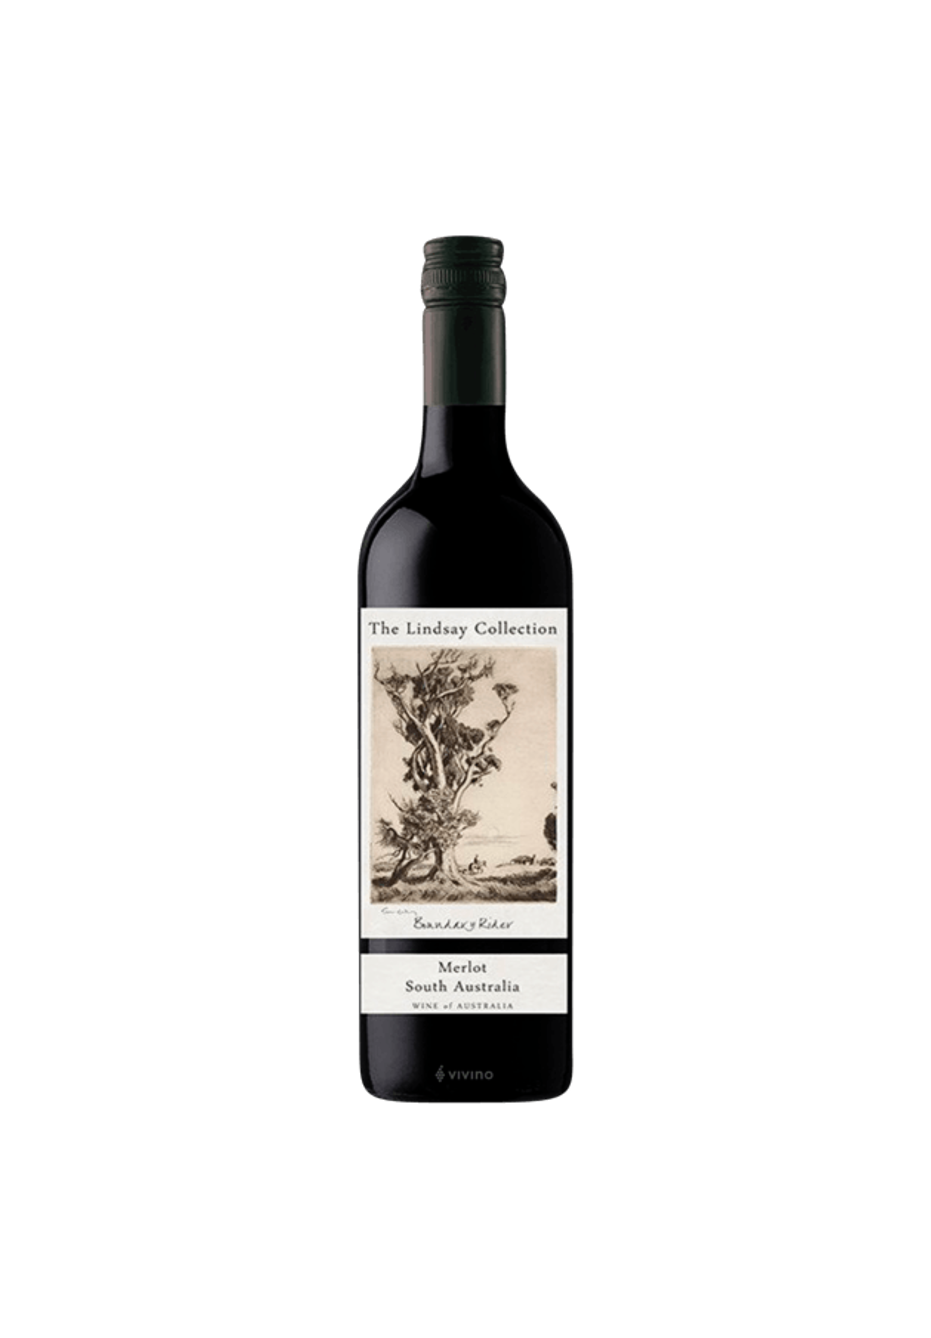 The Lindsay Collection 'Boundary Rider' South Australian Merlot 2019